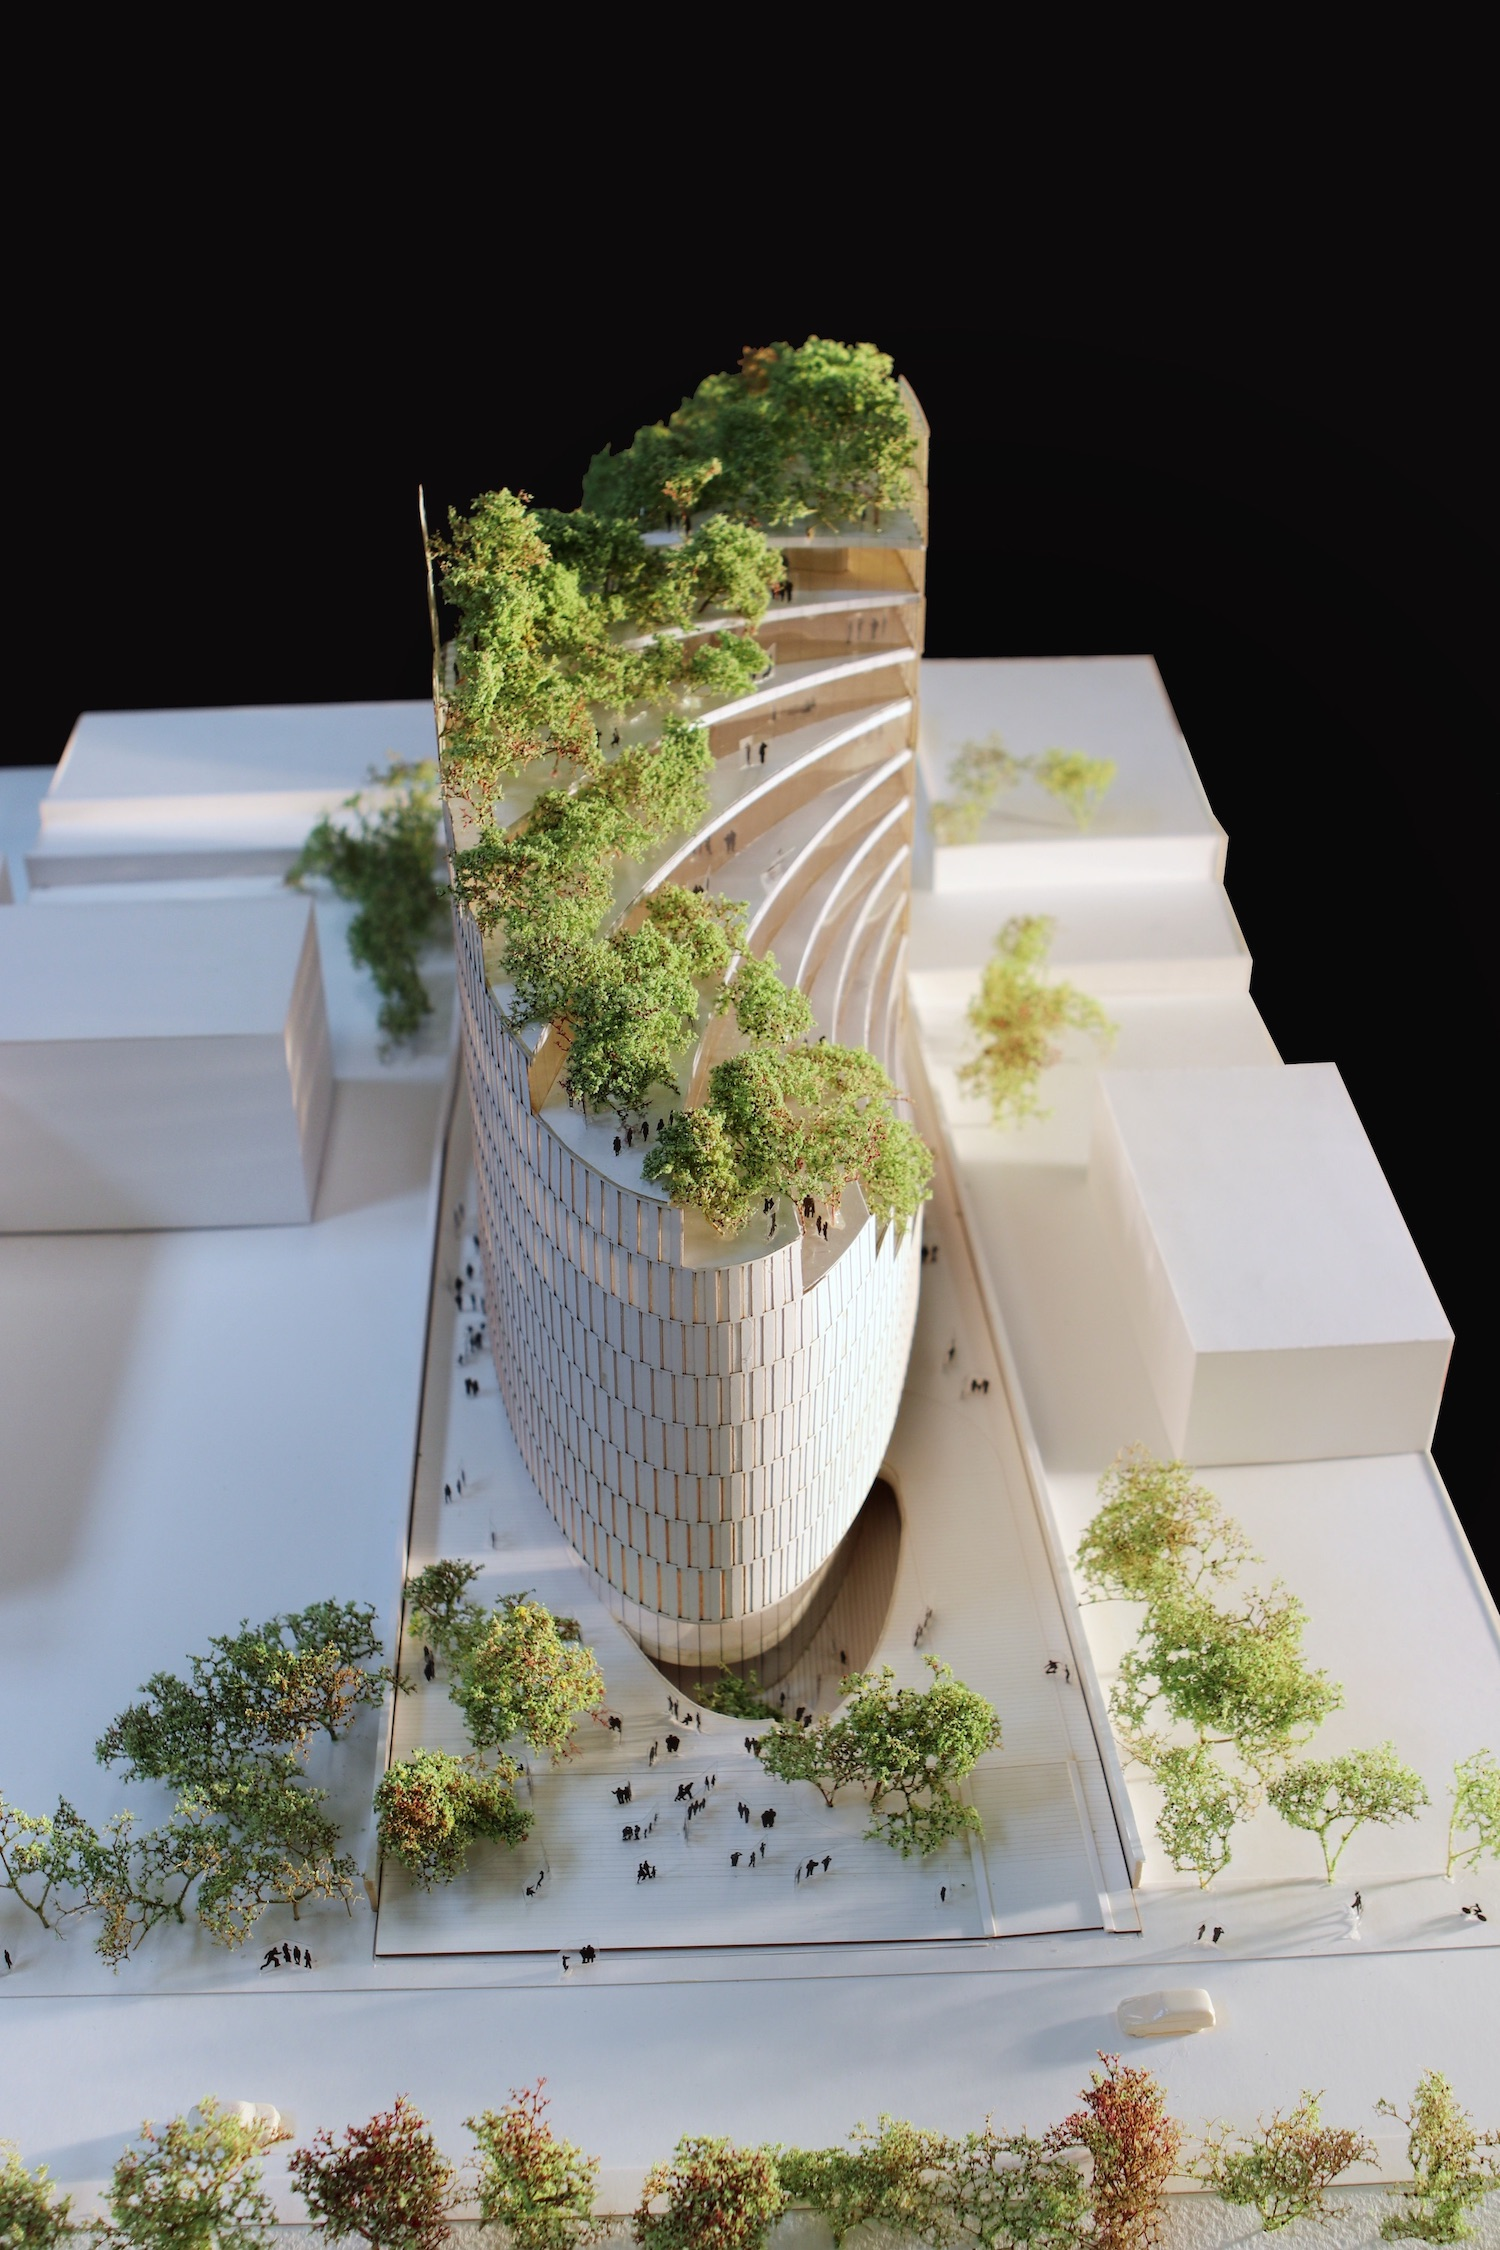 architectural model of a tower with layered green terraces